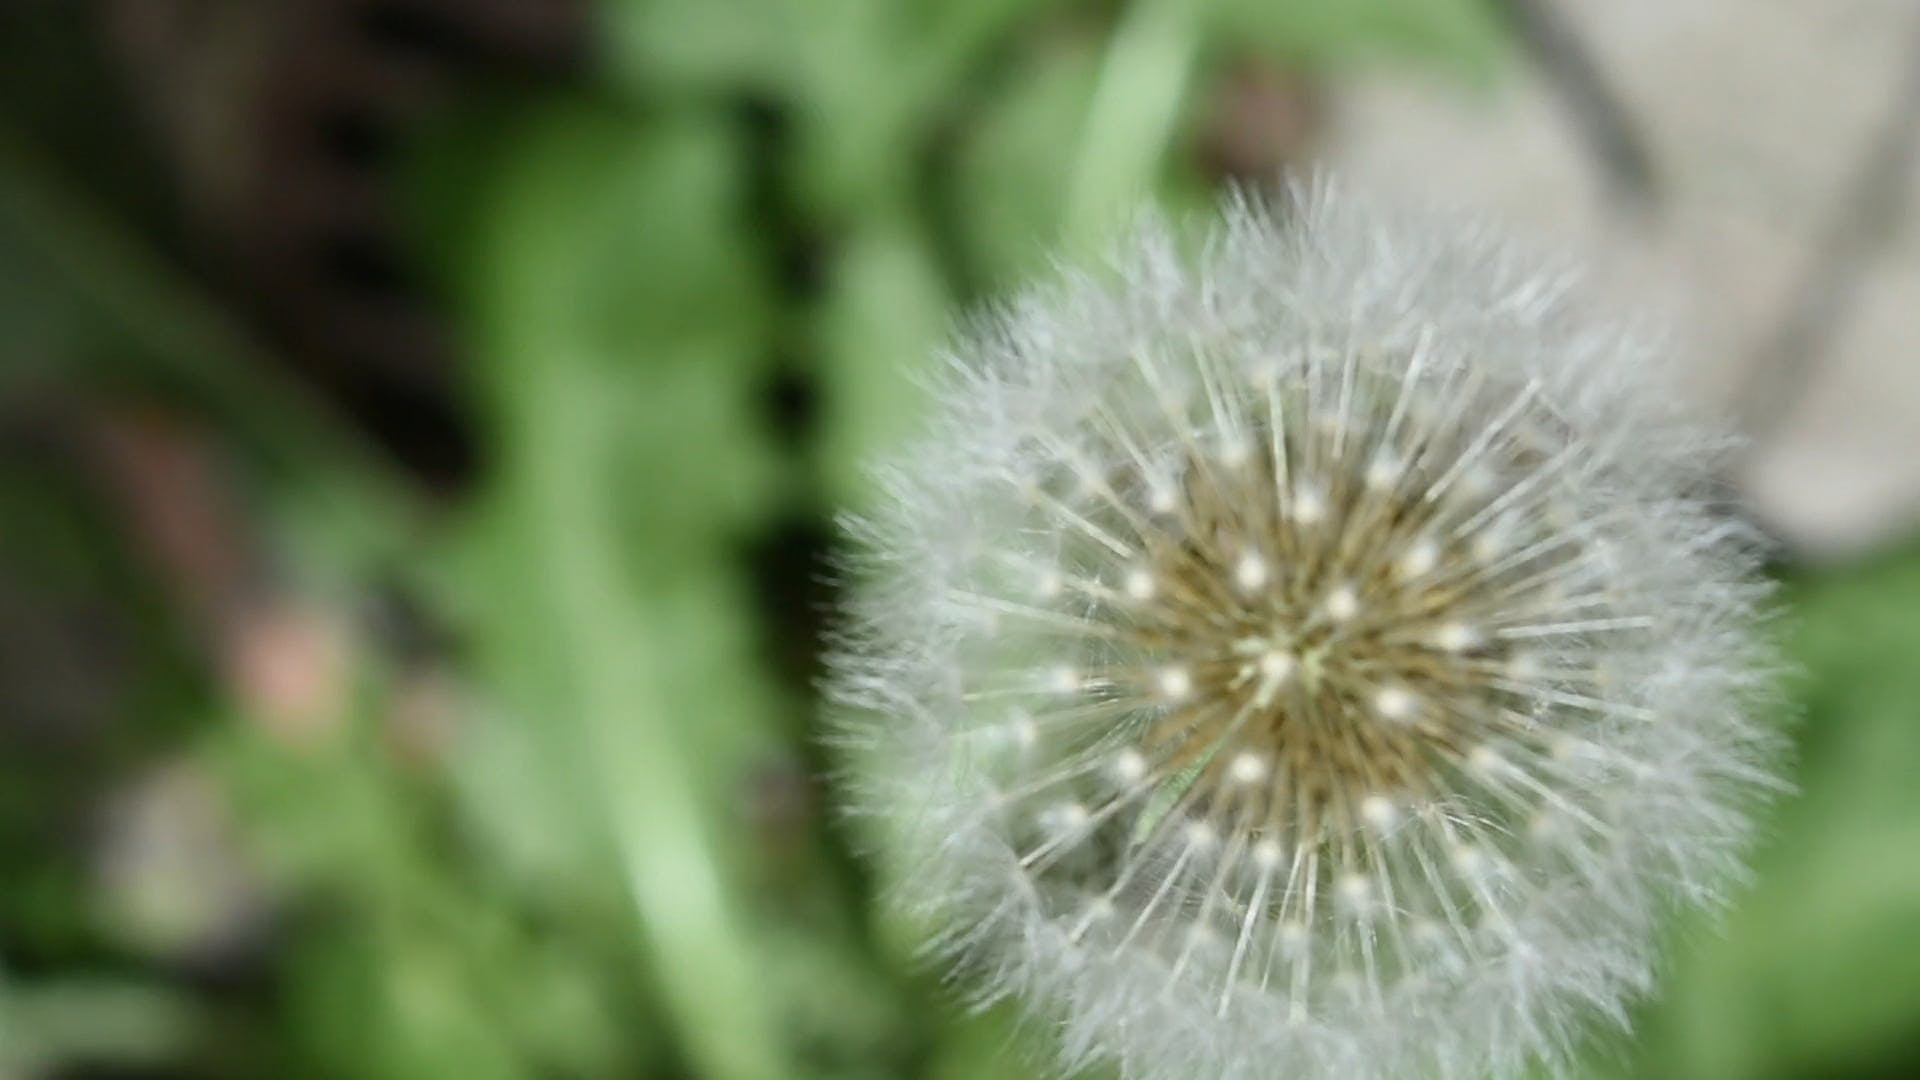 Close View Of A Dandelion